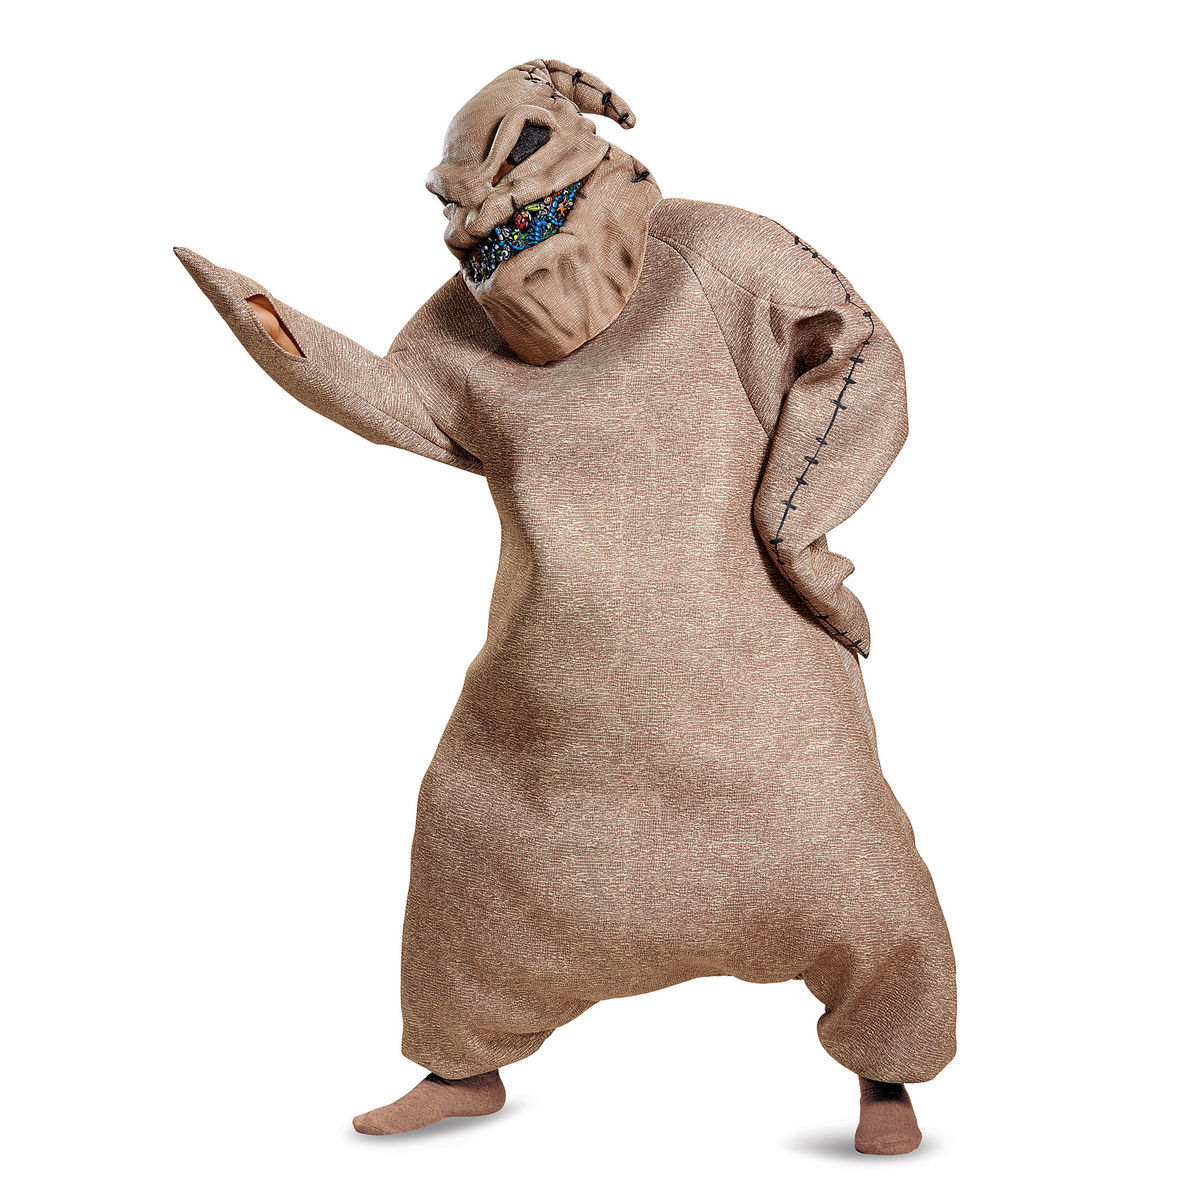 Oogie Boogie Prestige Costume For Adults By Disguise The Nightmare